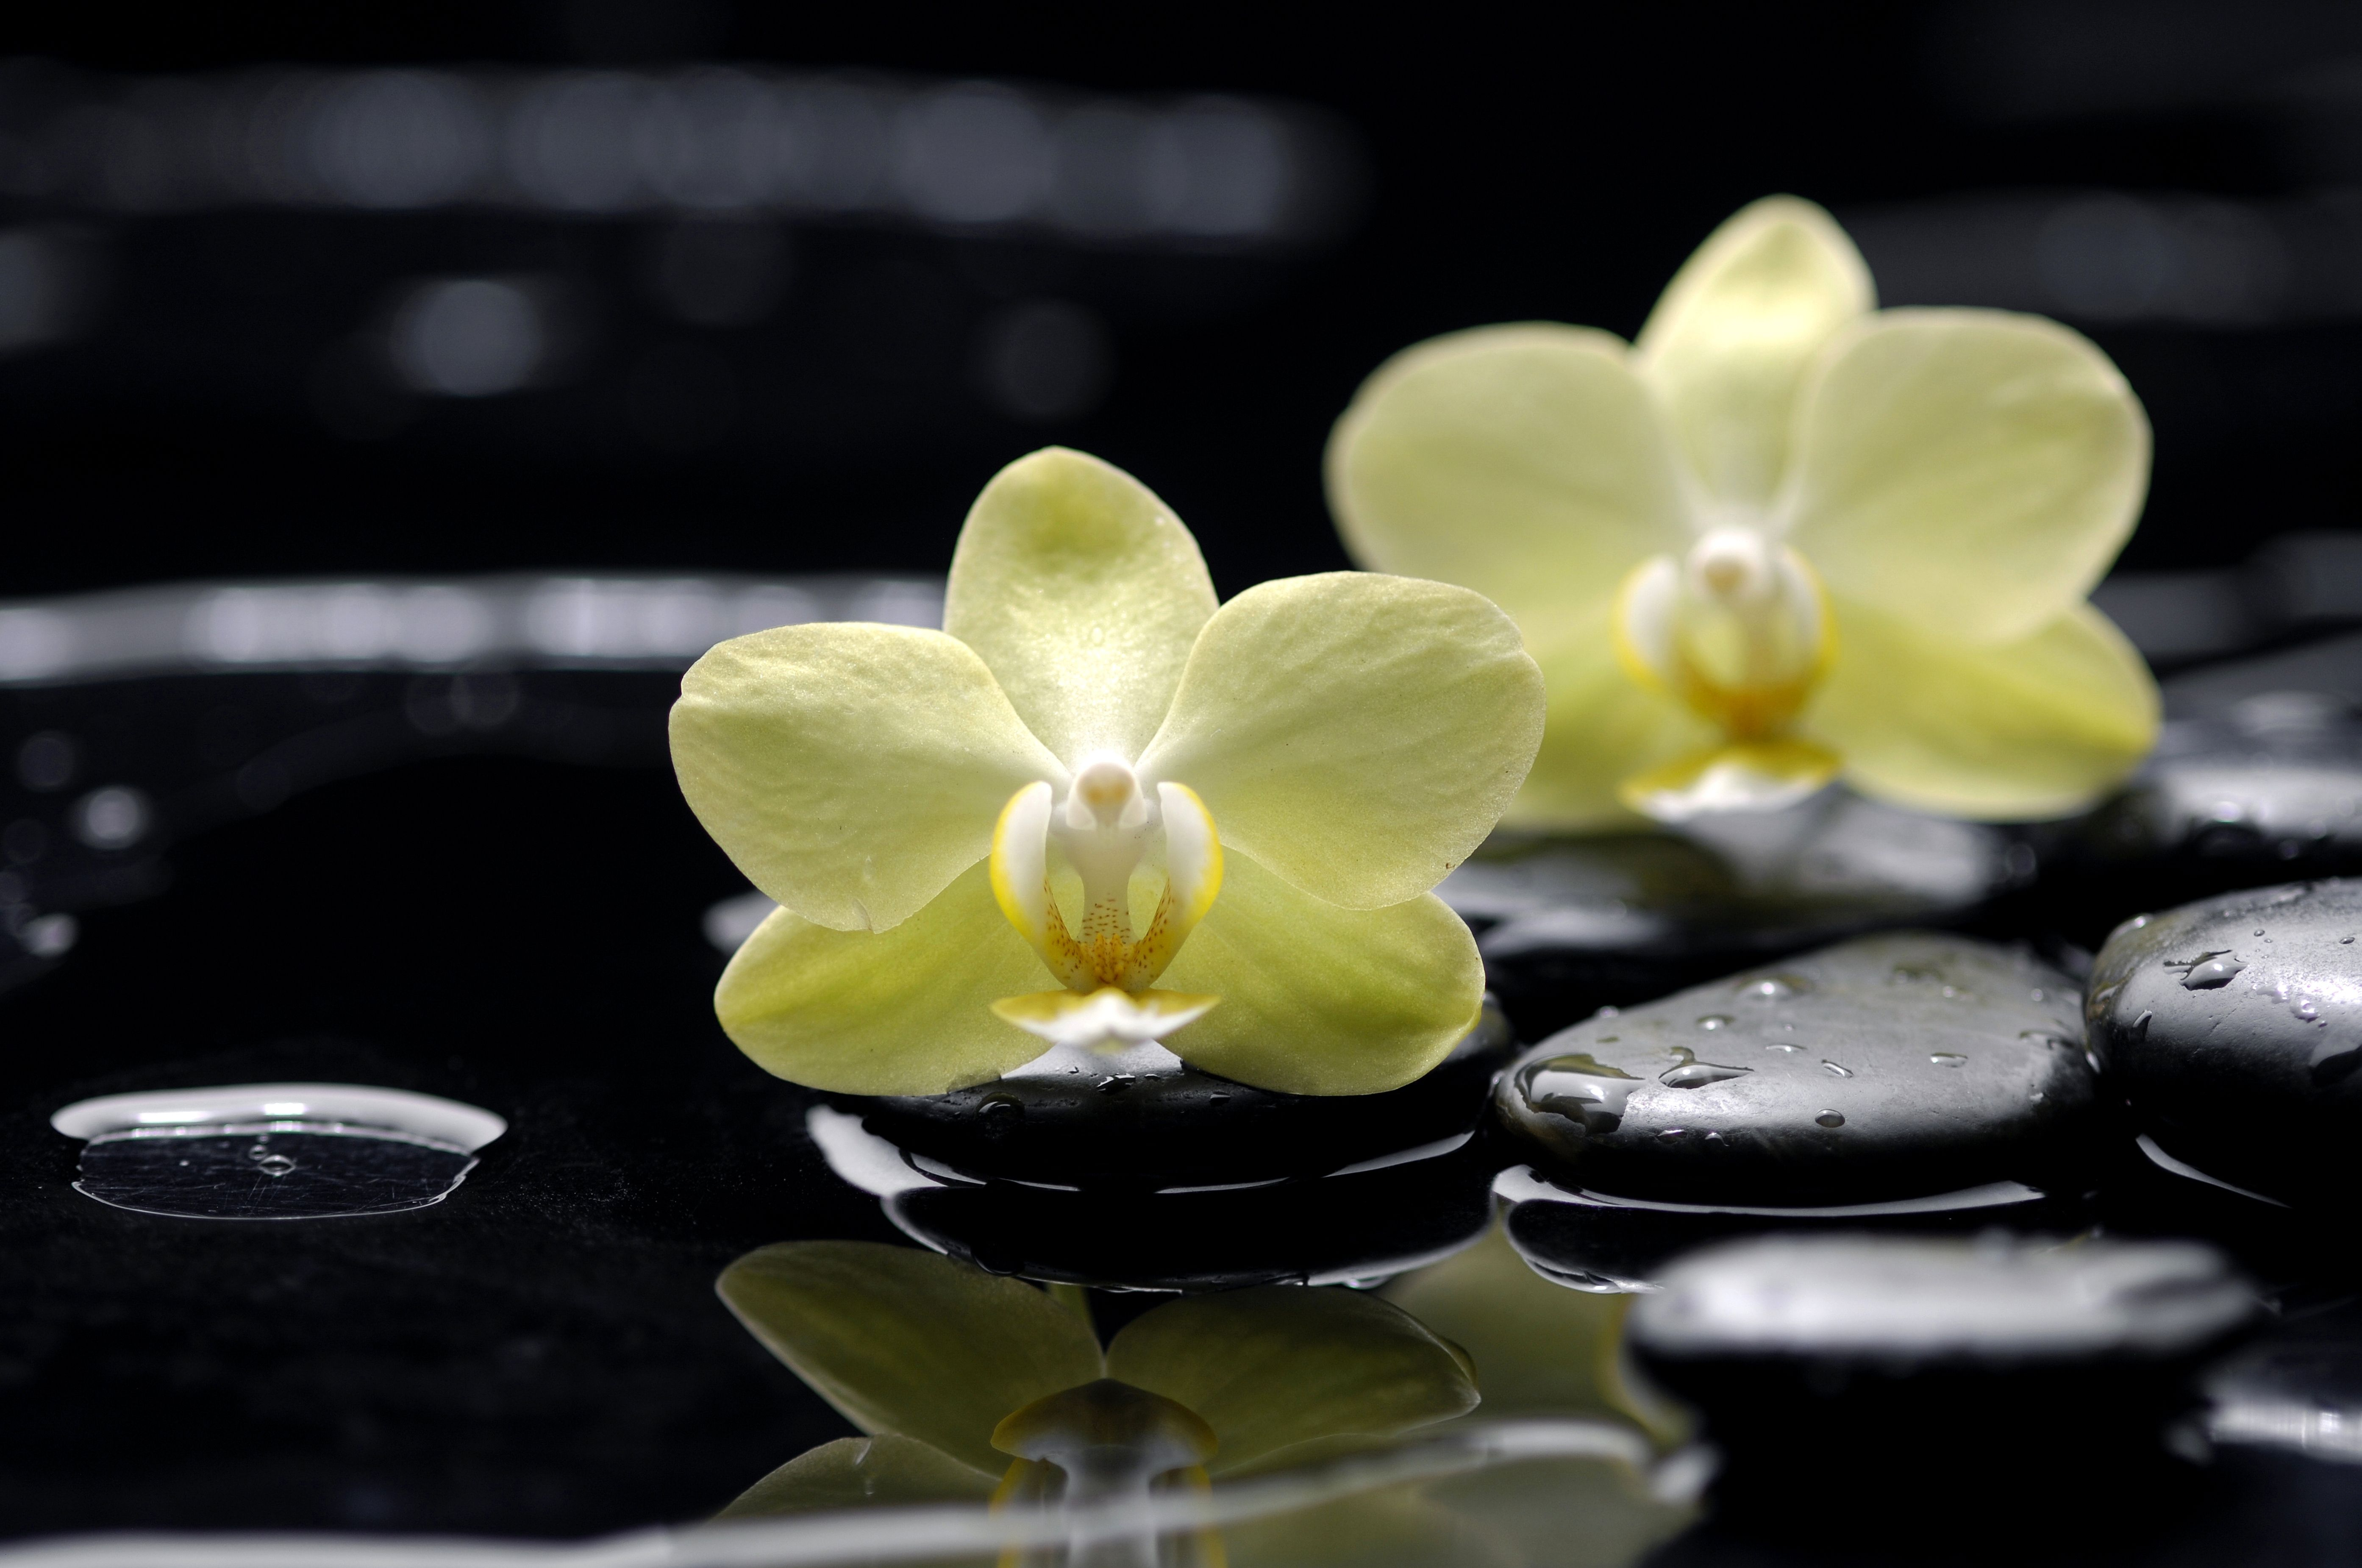 Yellow Orchids On Black Flat Stones Creates A Beautiful Water Reflection